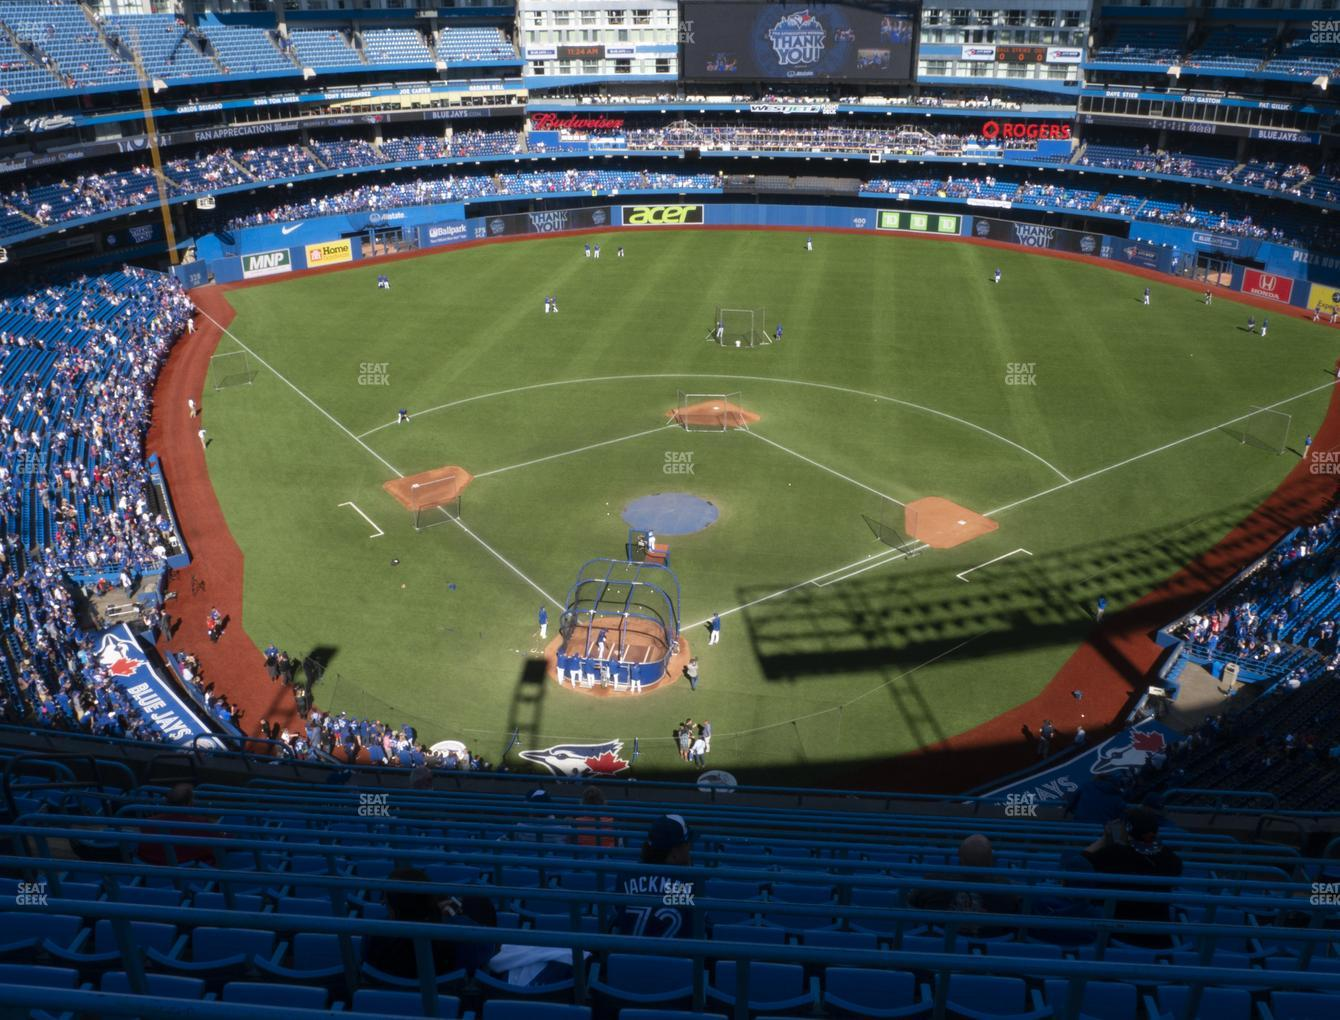 Toronto Blue Jays at Rogers Centre Section 523 R View